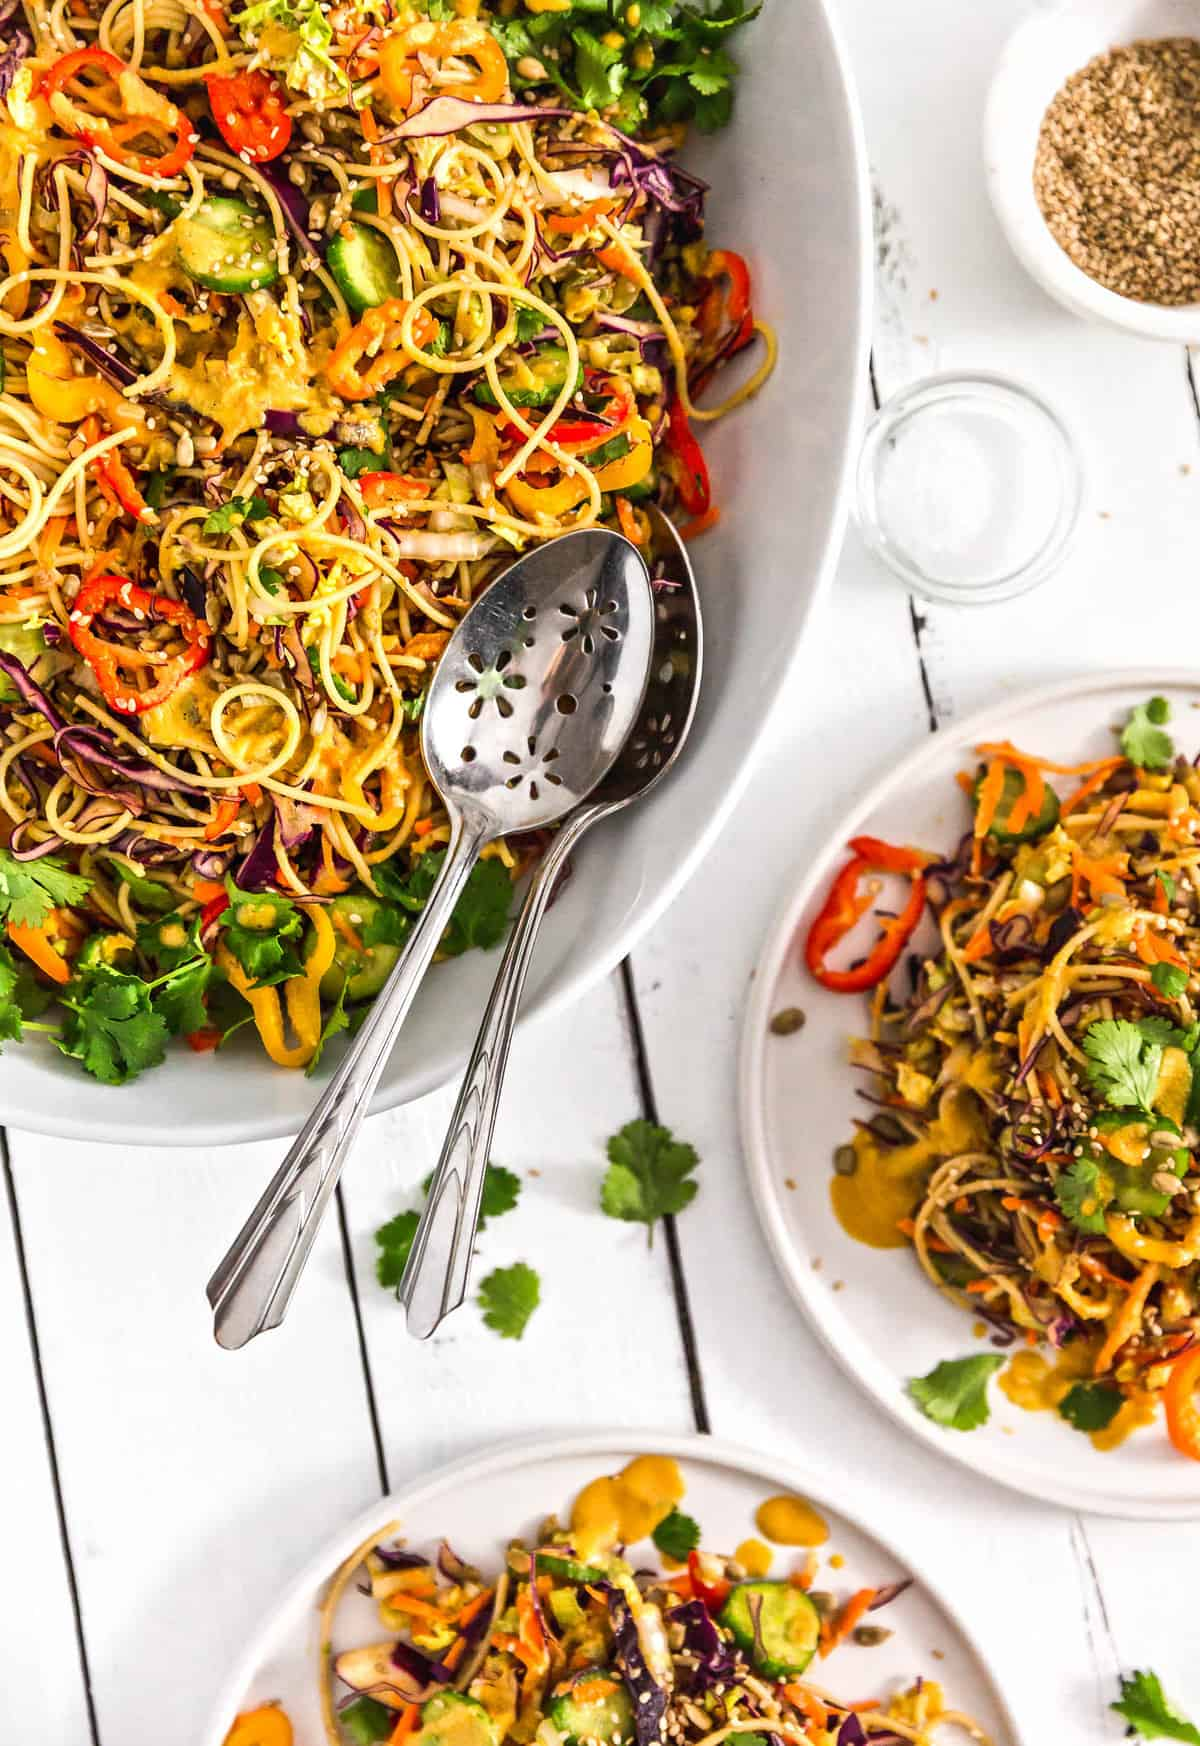 Asian Noodle Salad, noodle salad, plant based, vegan, vegetarian, whole food plant based, gluten free, recipe, wfpb, healthy, healthy vegan, oil free, no refined sugar, no oil, refined sugar free, dairy free, salad, noodles, pasta